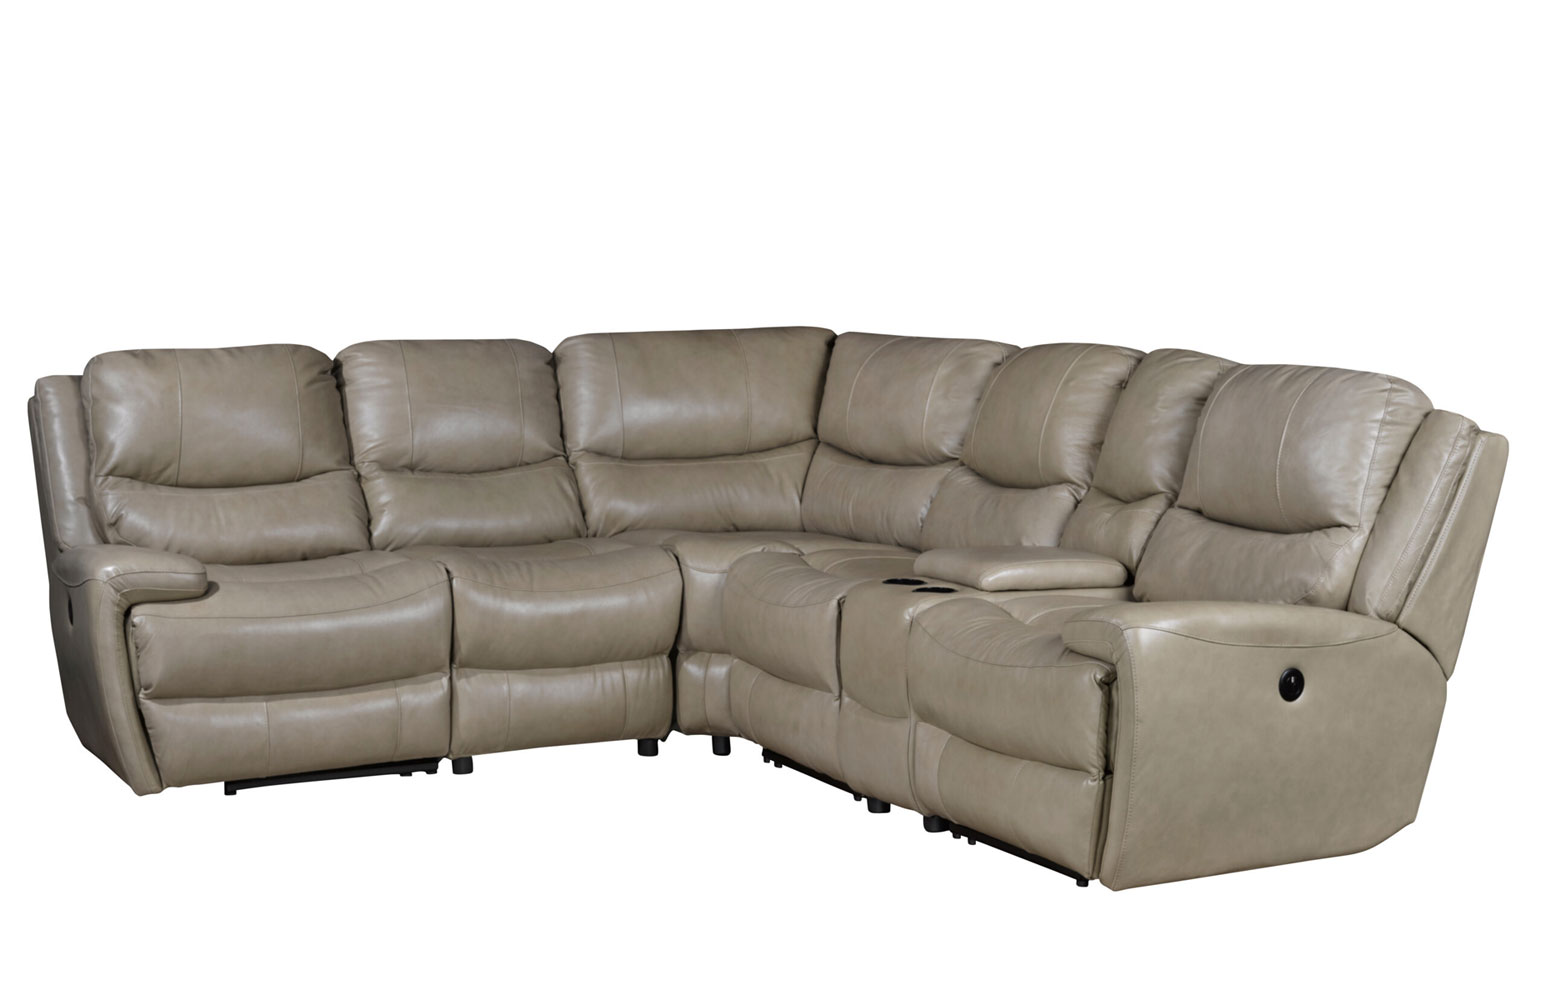 Sydney High Grade Leather Sectional with USB